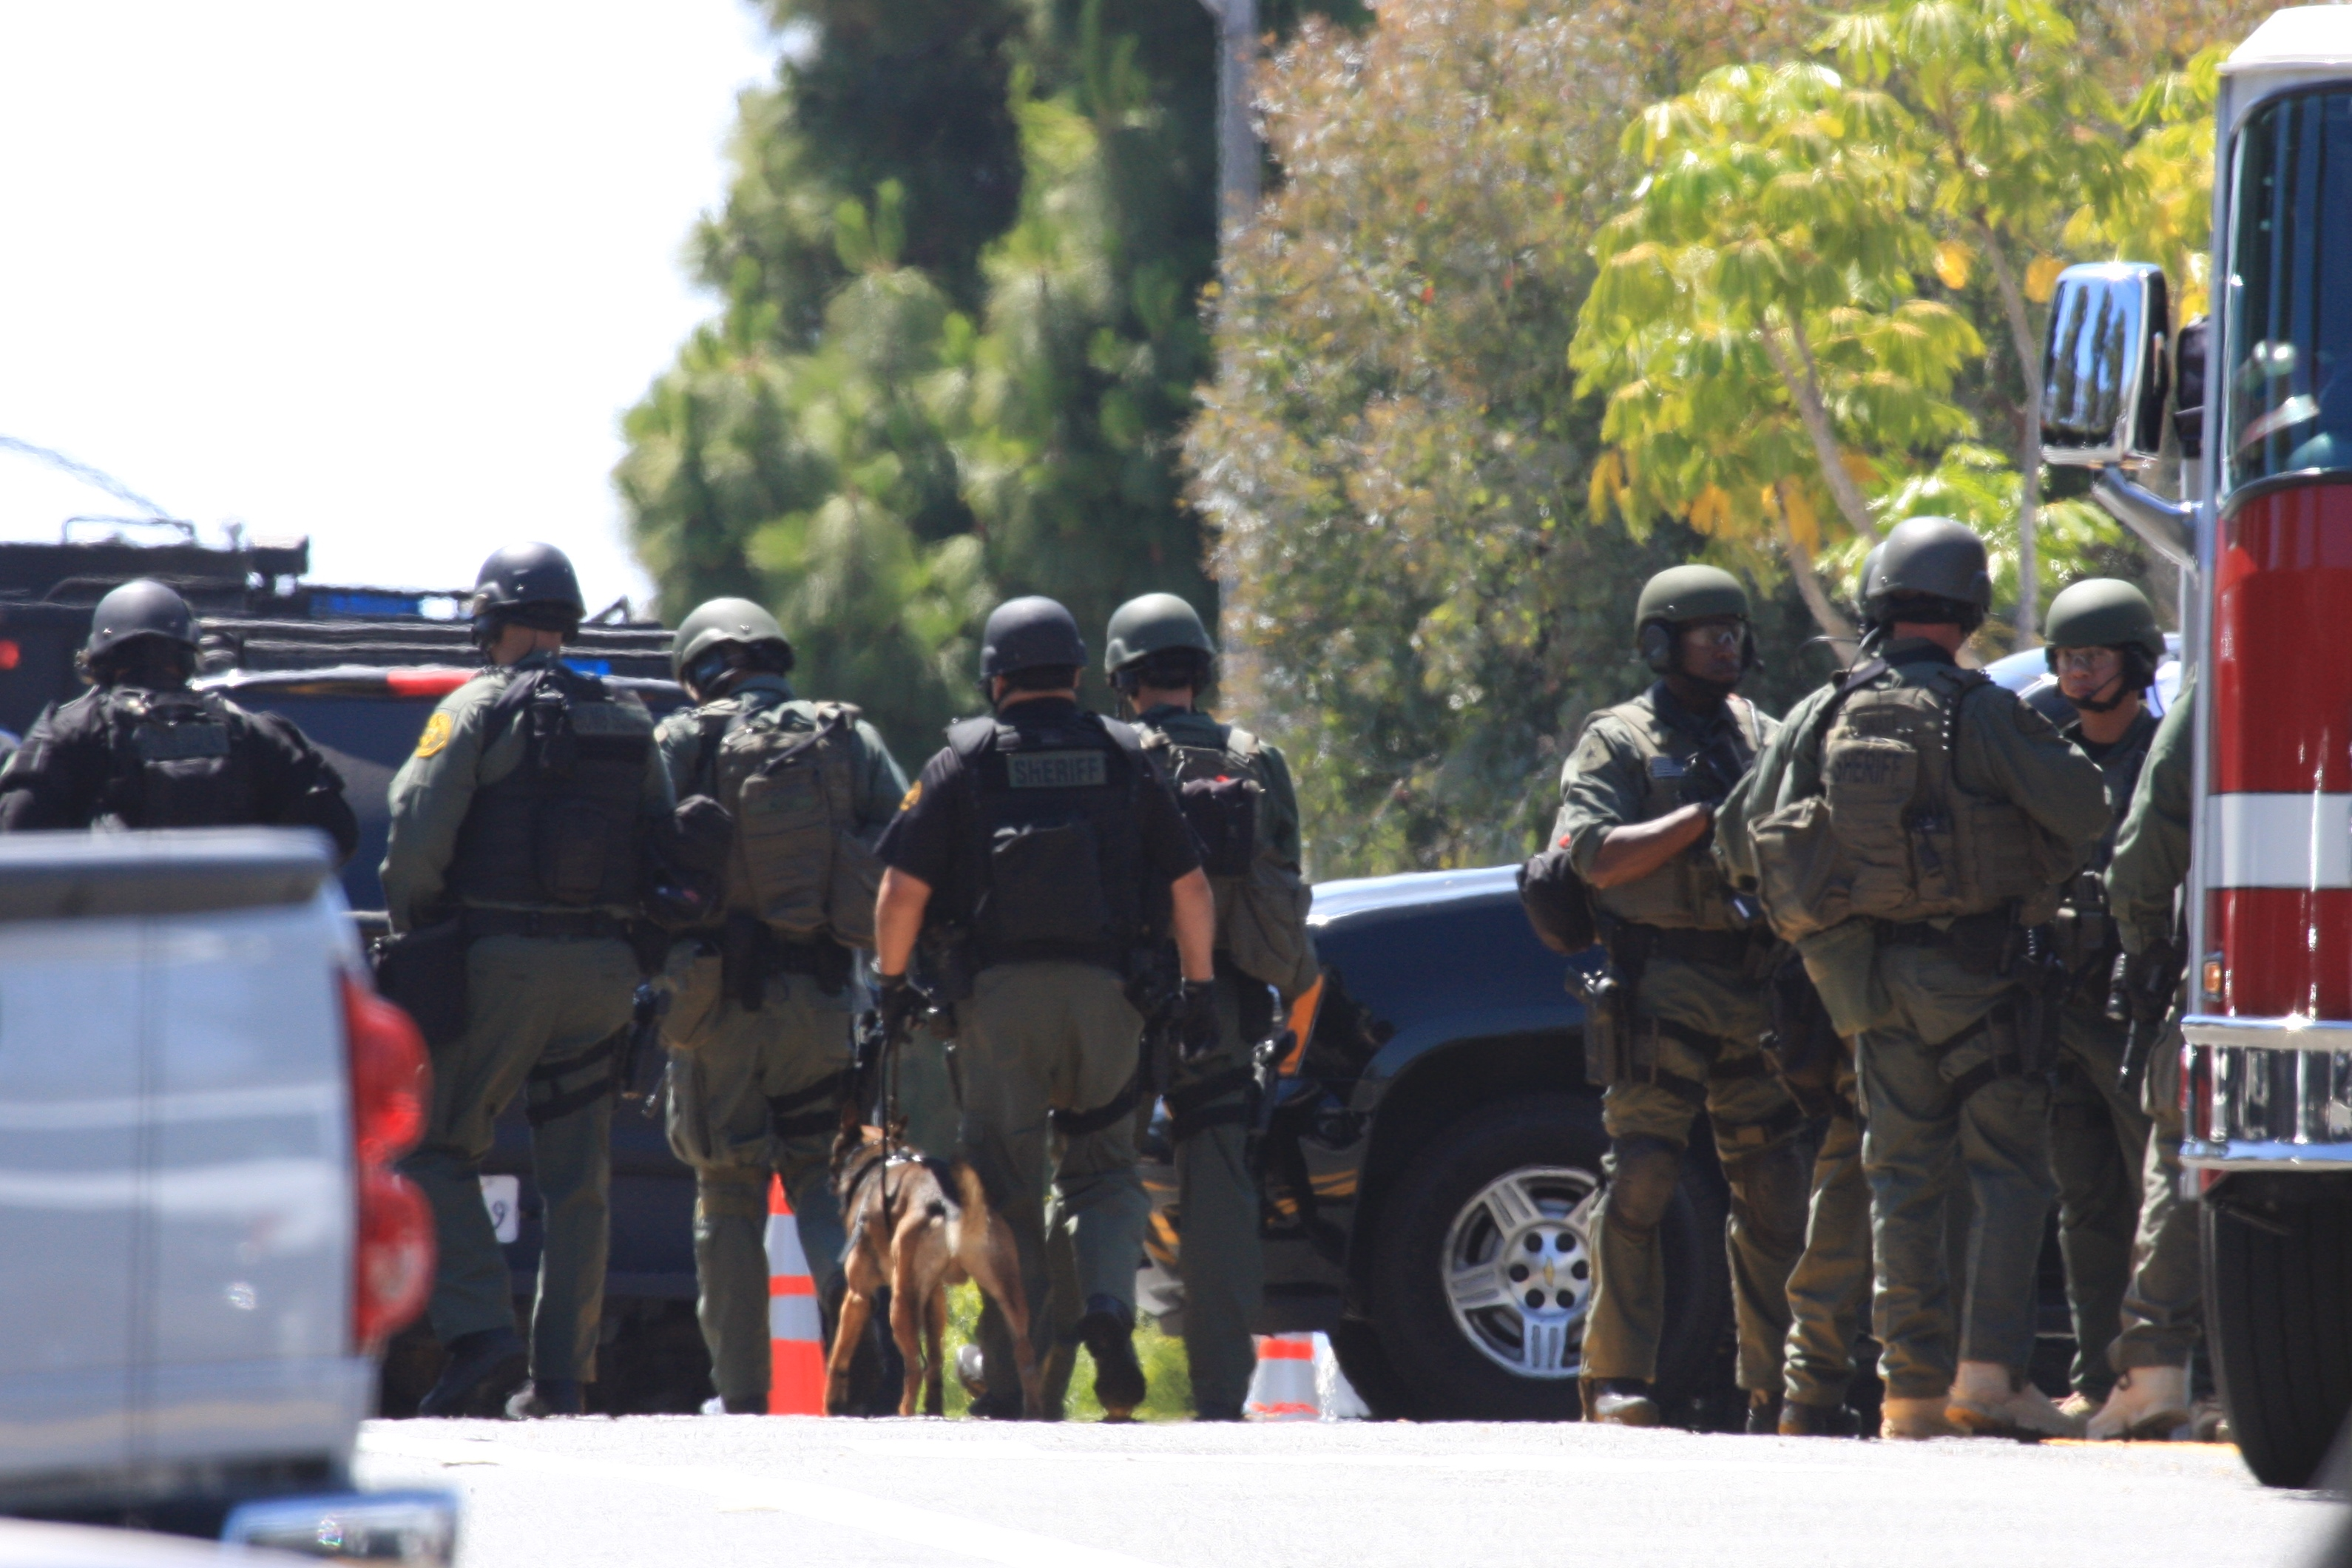 Special Weapons and Tactics (SWAT) and Critical Incident Response Team (CIRT) members head into Dana Hills High School at 3 p.m. Thursday to perform a systematic campus search after the discovery of a gun case prompted a lockdown. Photo: Andrea Swayne